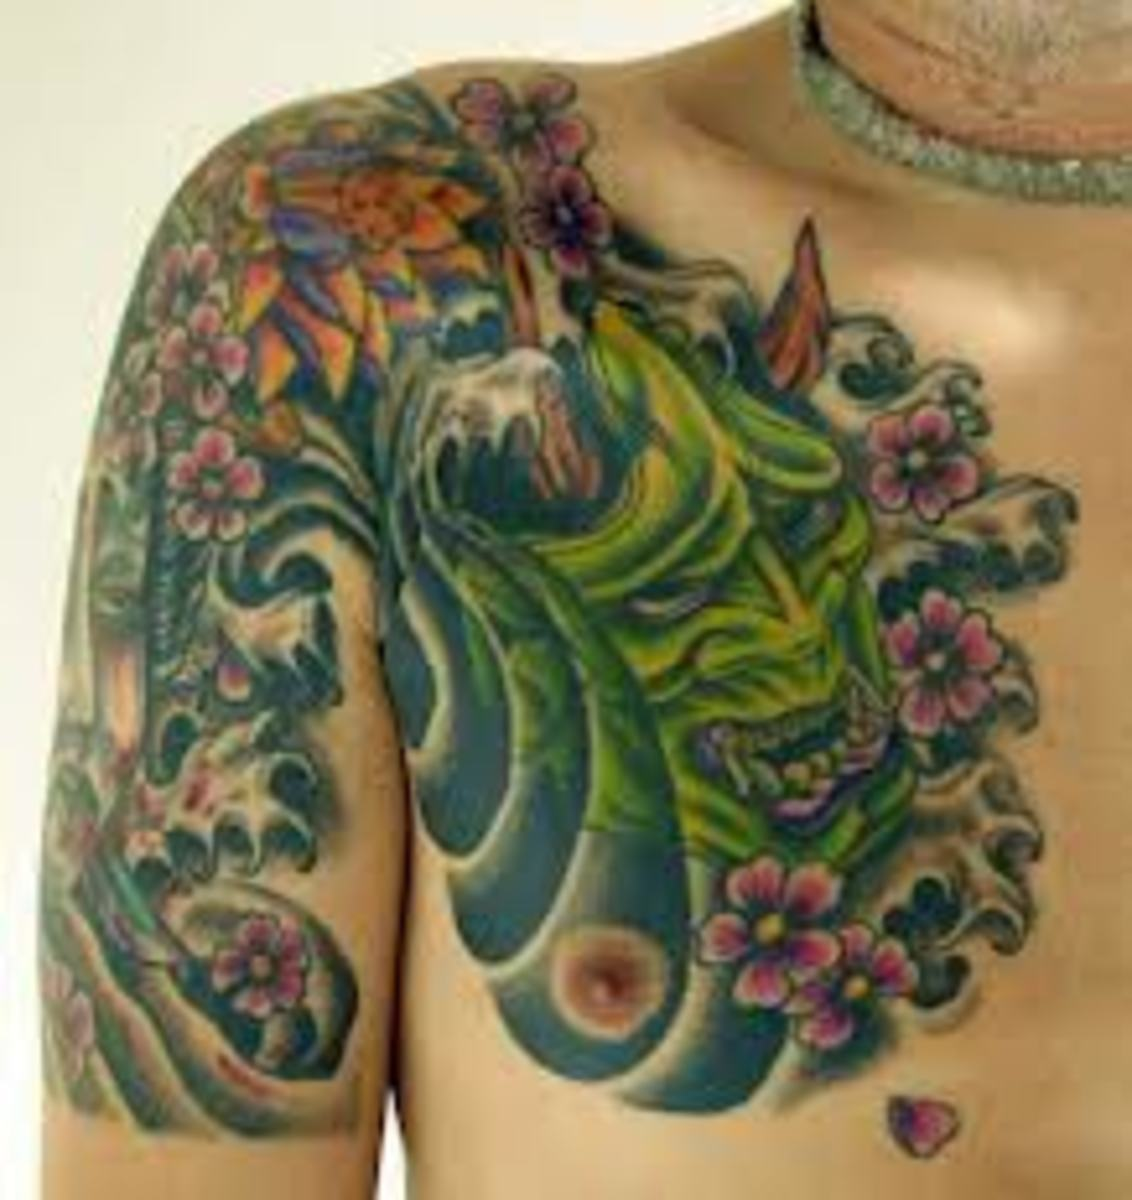 Another green hannya tattoo with flowers and waves.